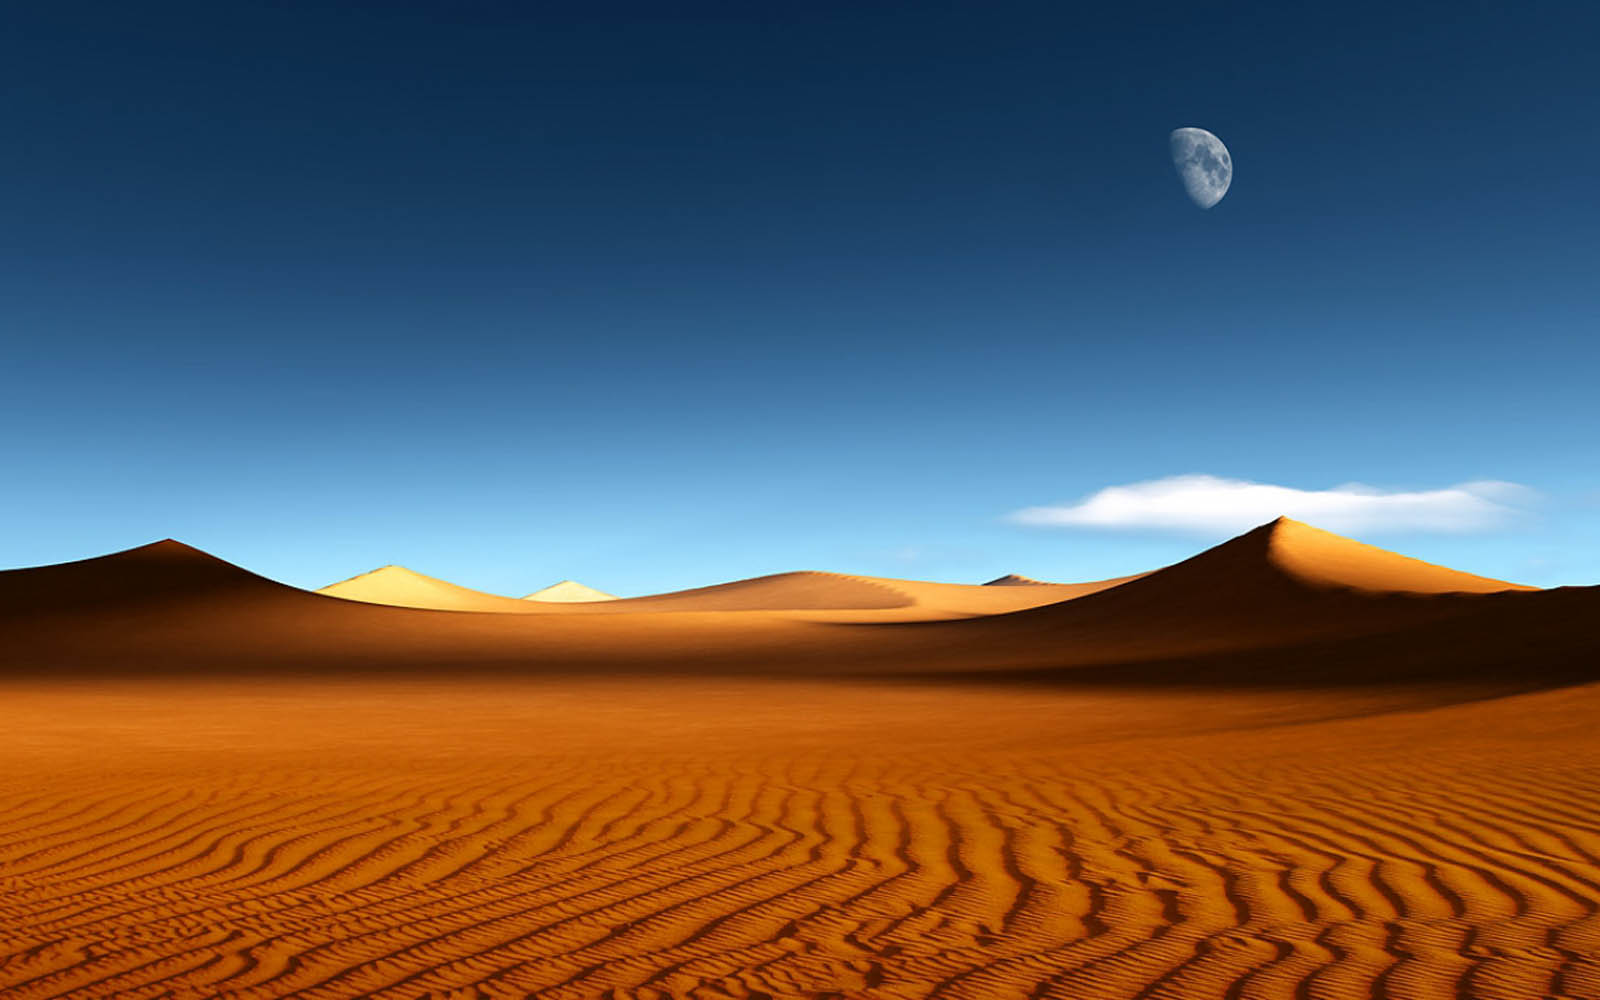 Tag Desert Wallpapers Backgrounds Photos Picturesand Images for 1600x1000